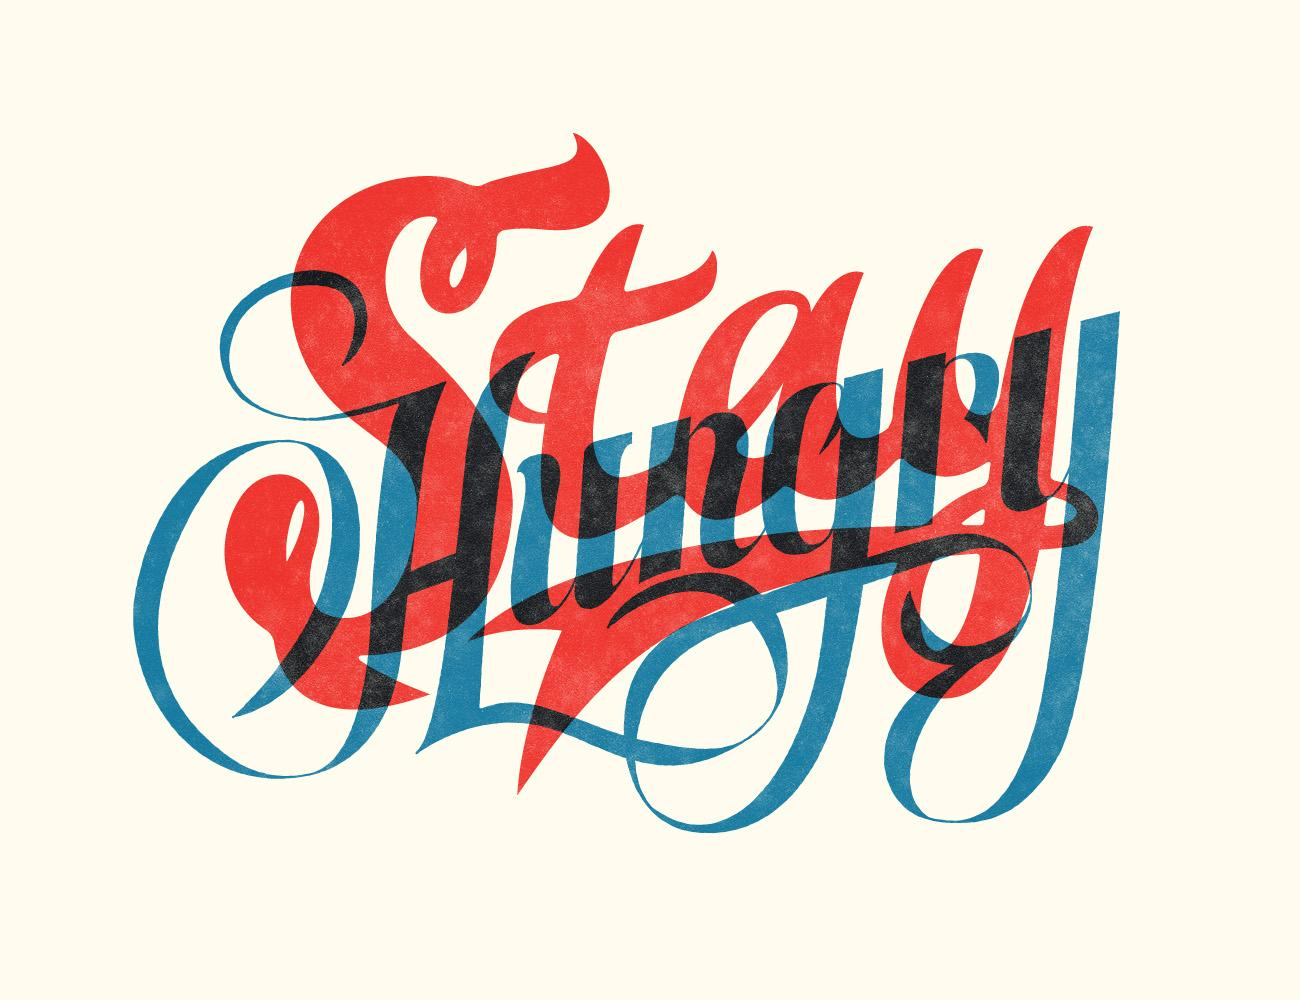 40 Remarkable Examples Of Typography Design #8 | inspirationfeed.com